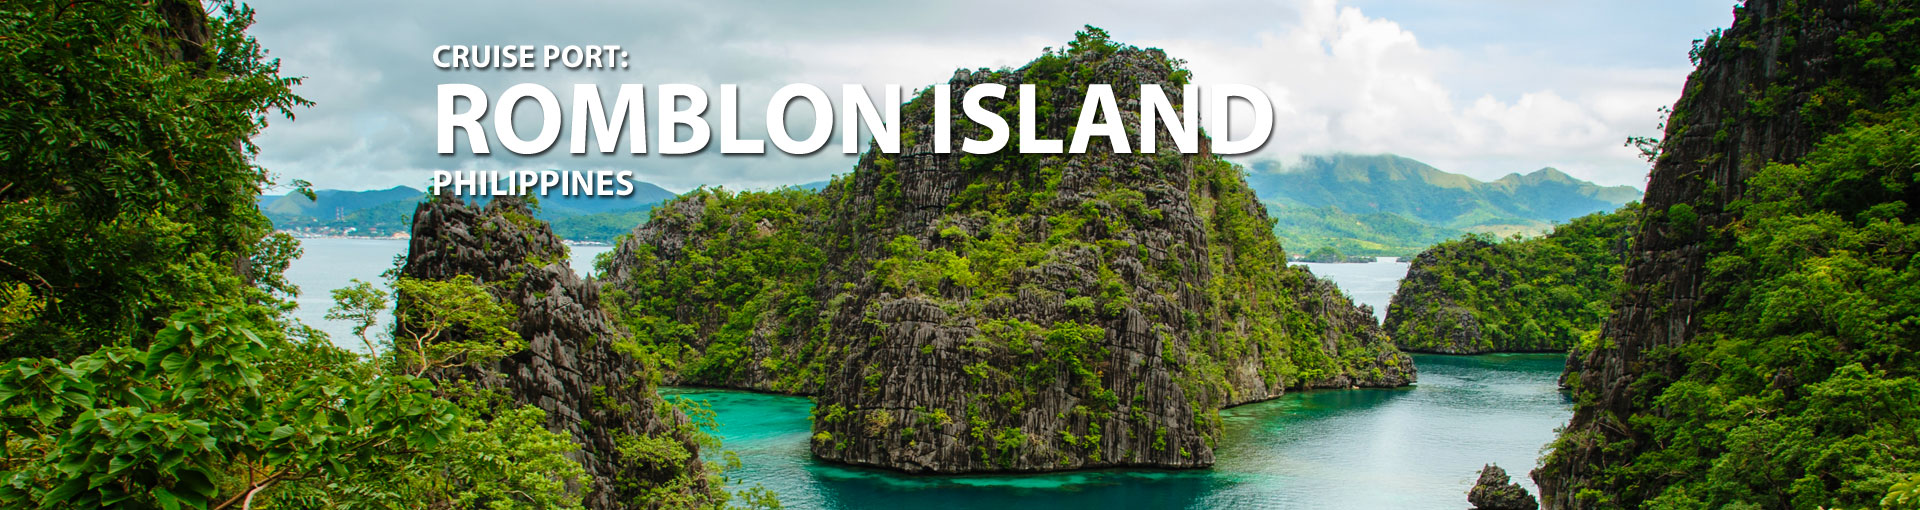 Cruises to Romblon Island, Philippines